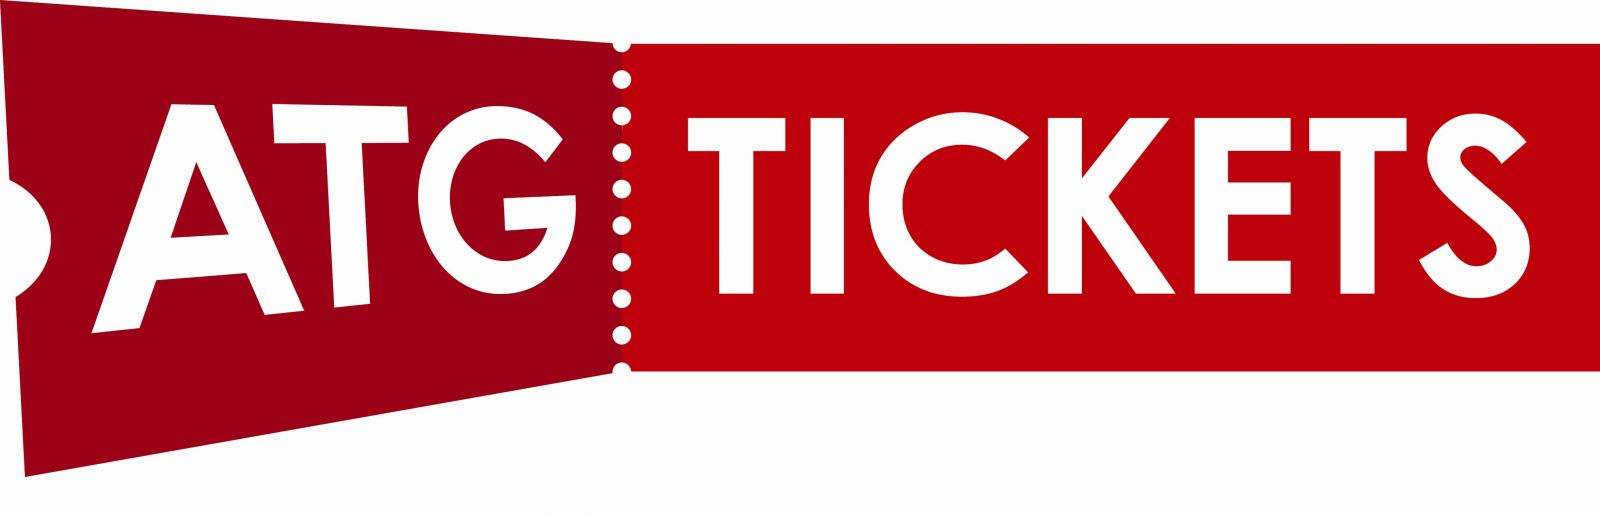 Atg Tickets voucher code